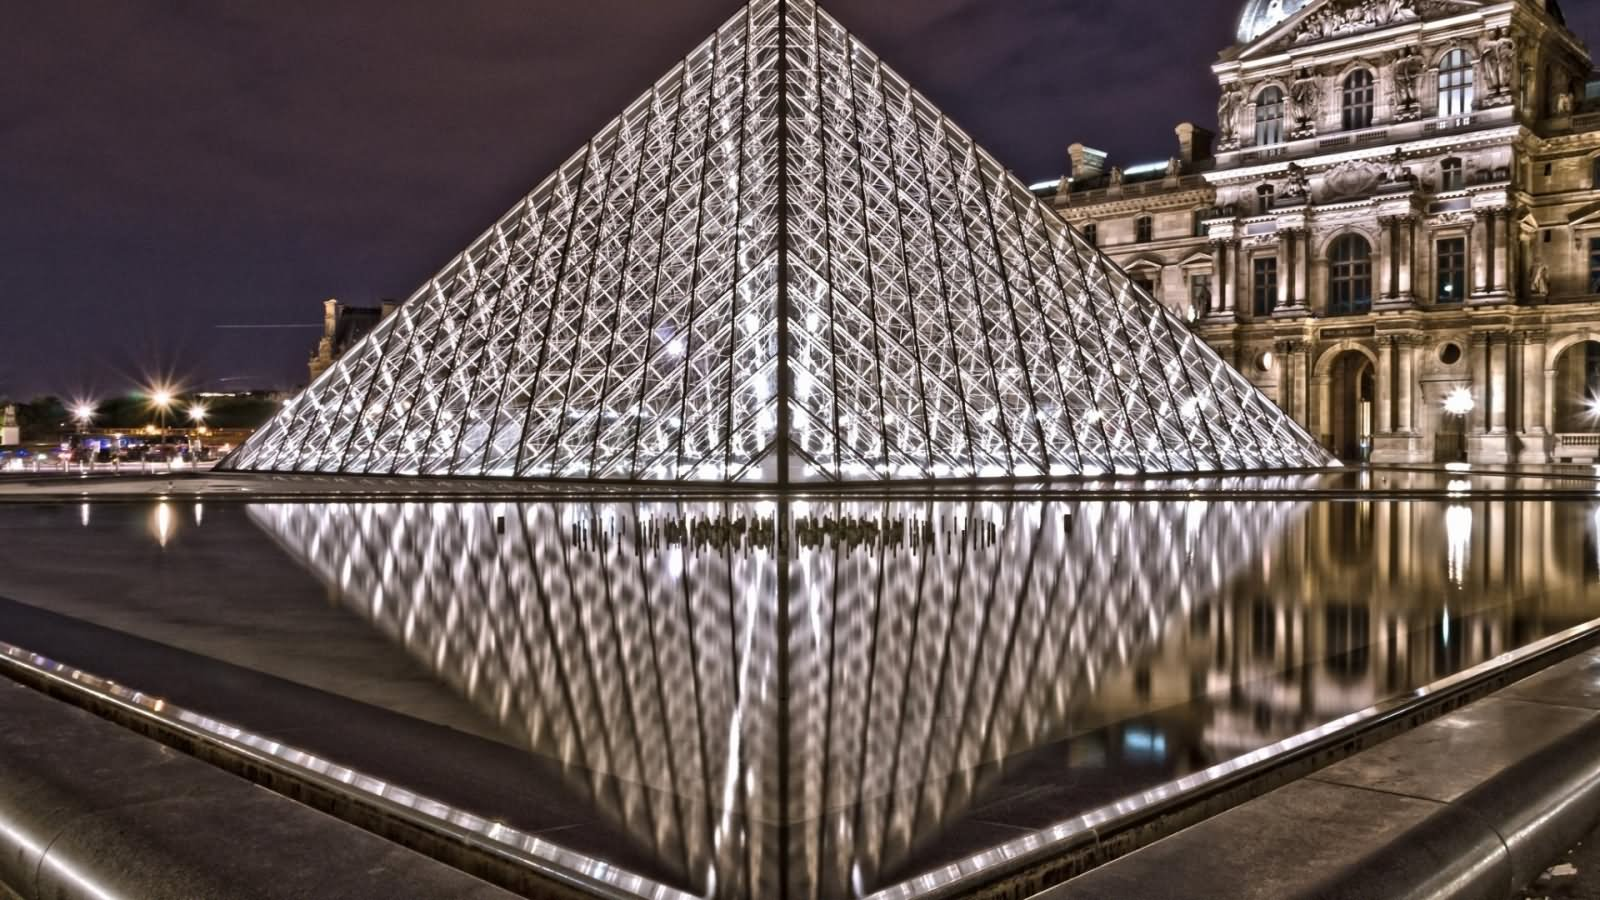 The Louvre Museum Glass Pyramid